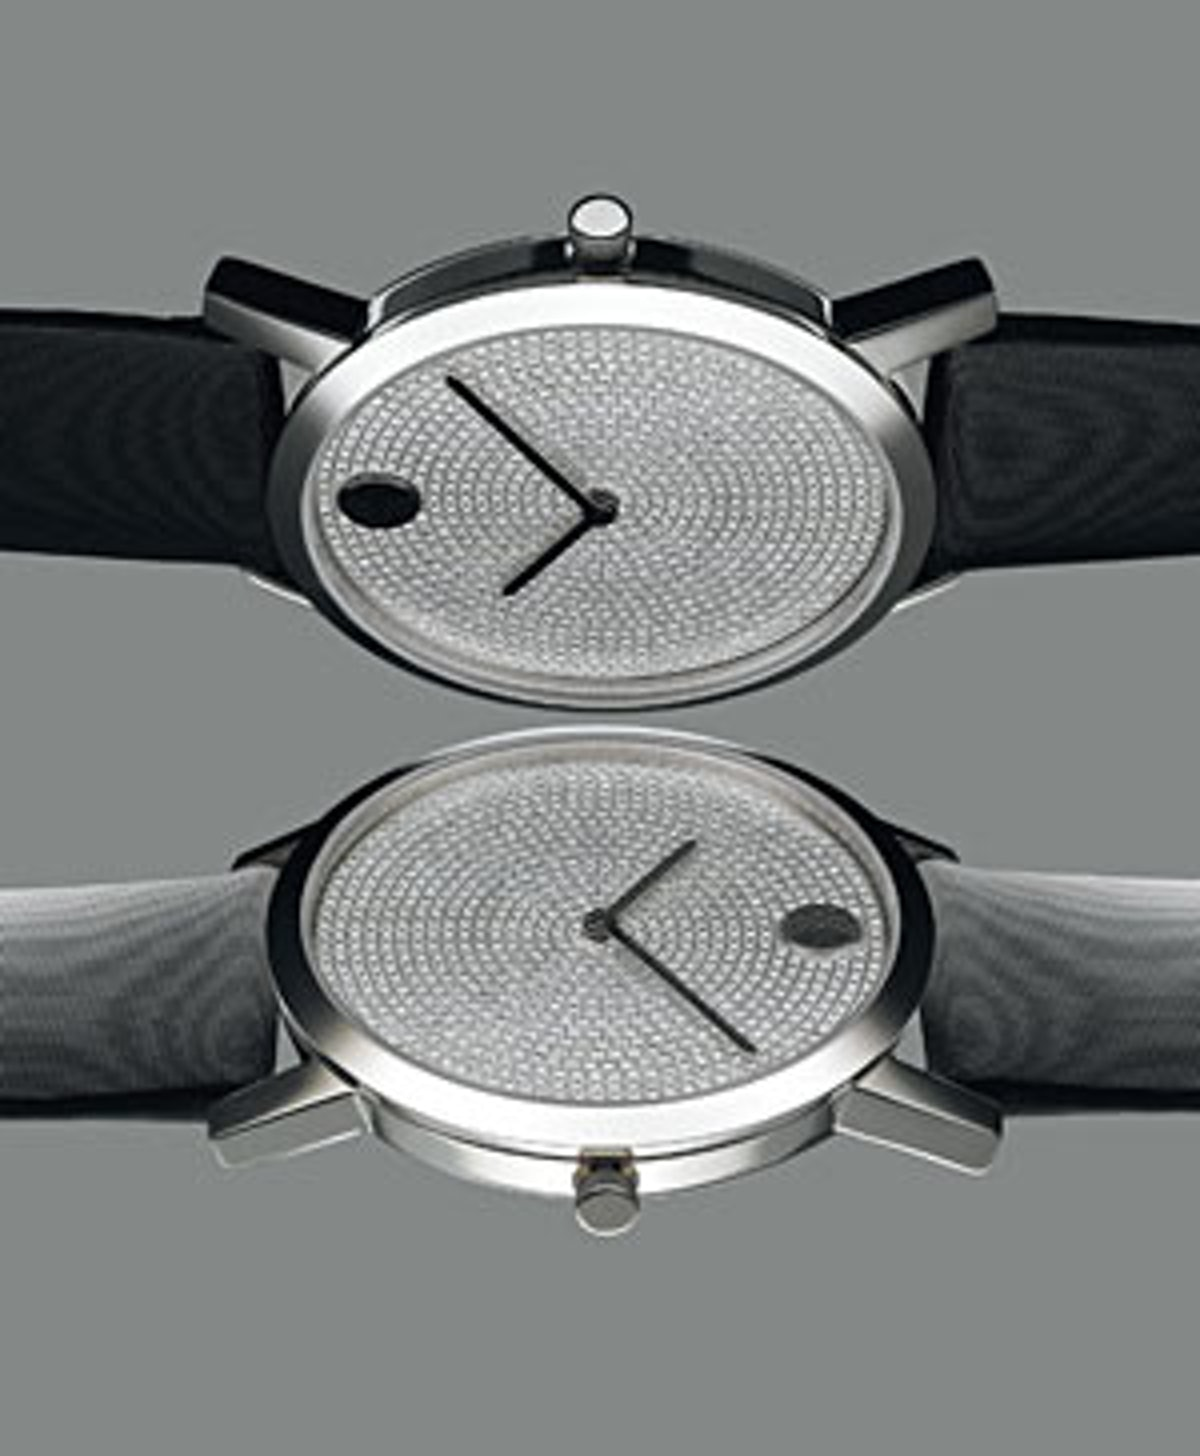 acss_sparkly_watches_05_v.jpg